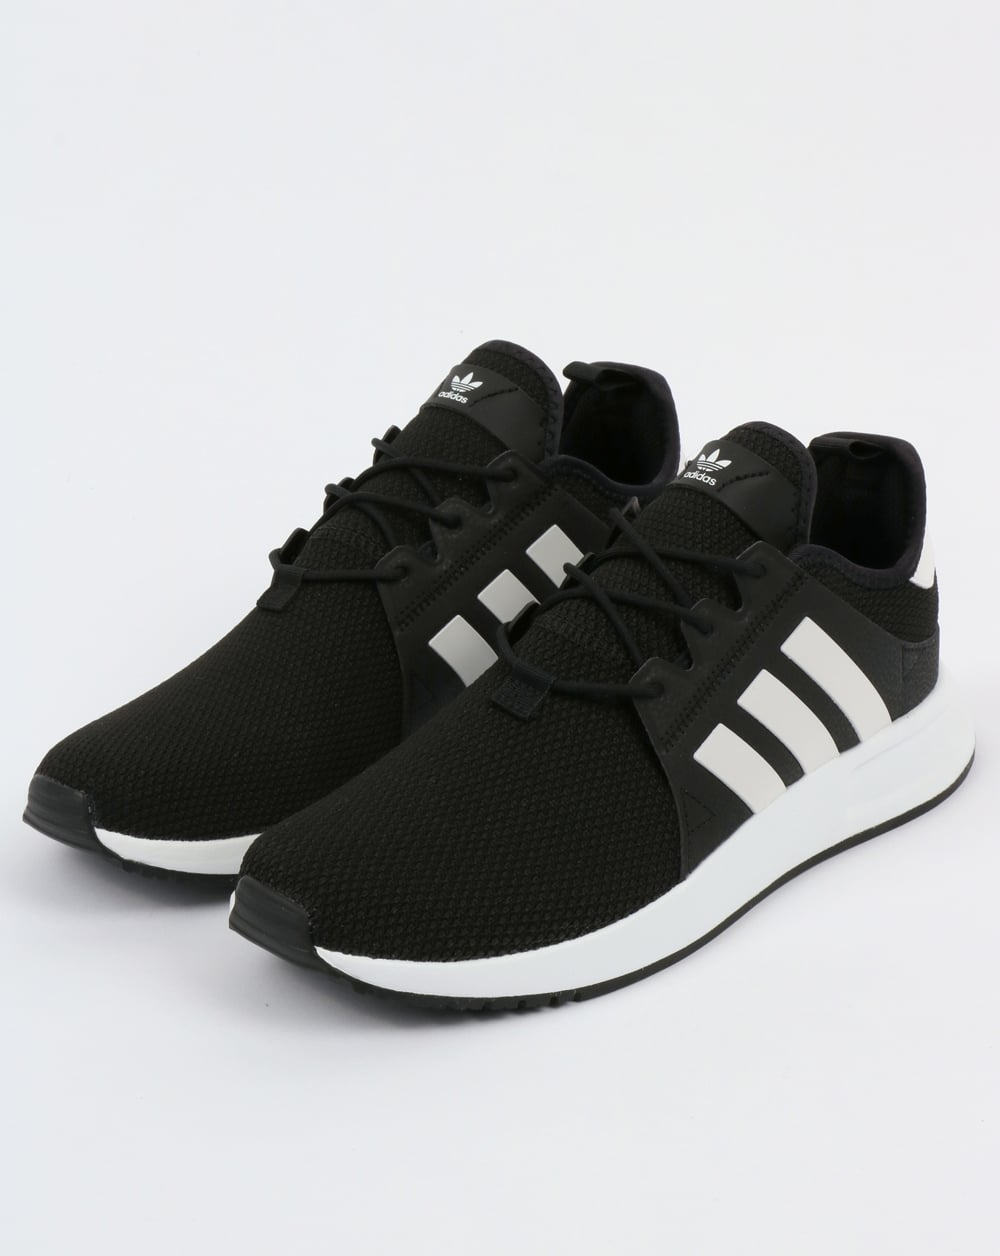 Black White Clipart R Large Pic: Adidas XPLR Trainers Black/White,originals,shoes,running